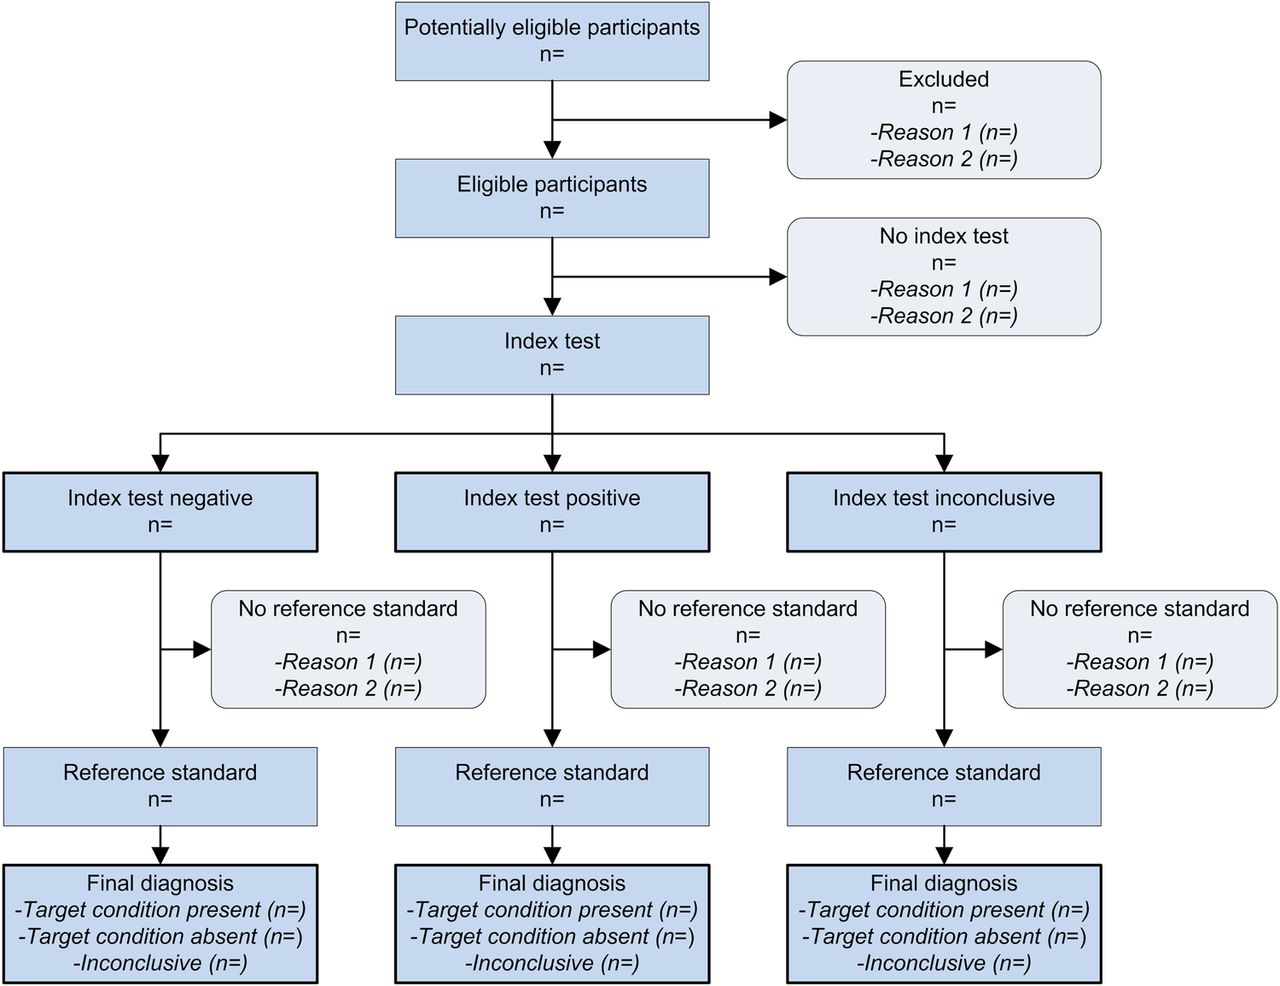 STARD 2015 guidelines for reporting diagnostic accuracy